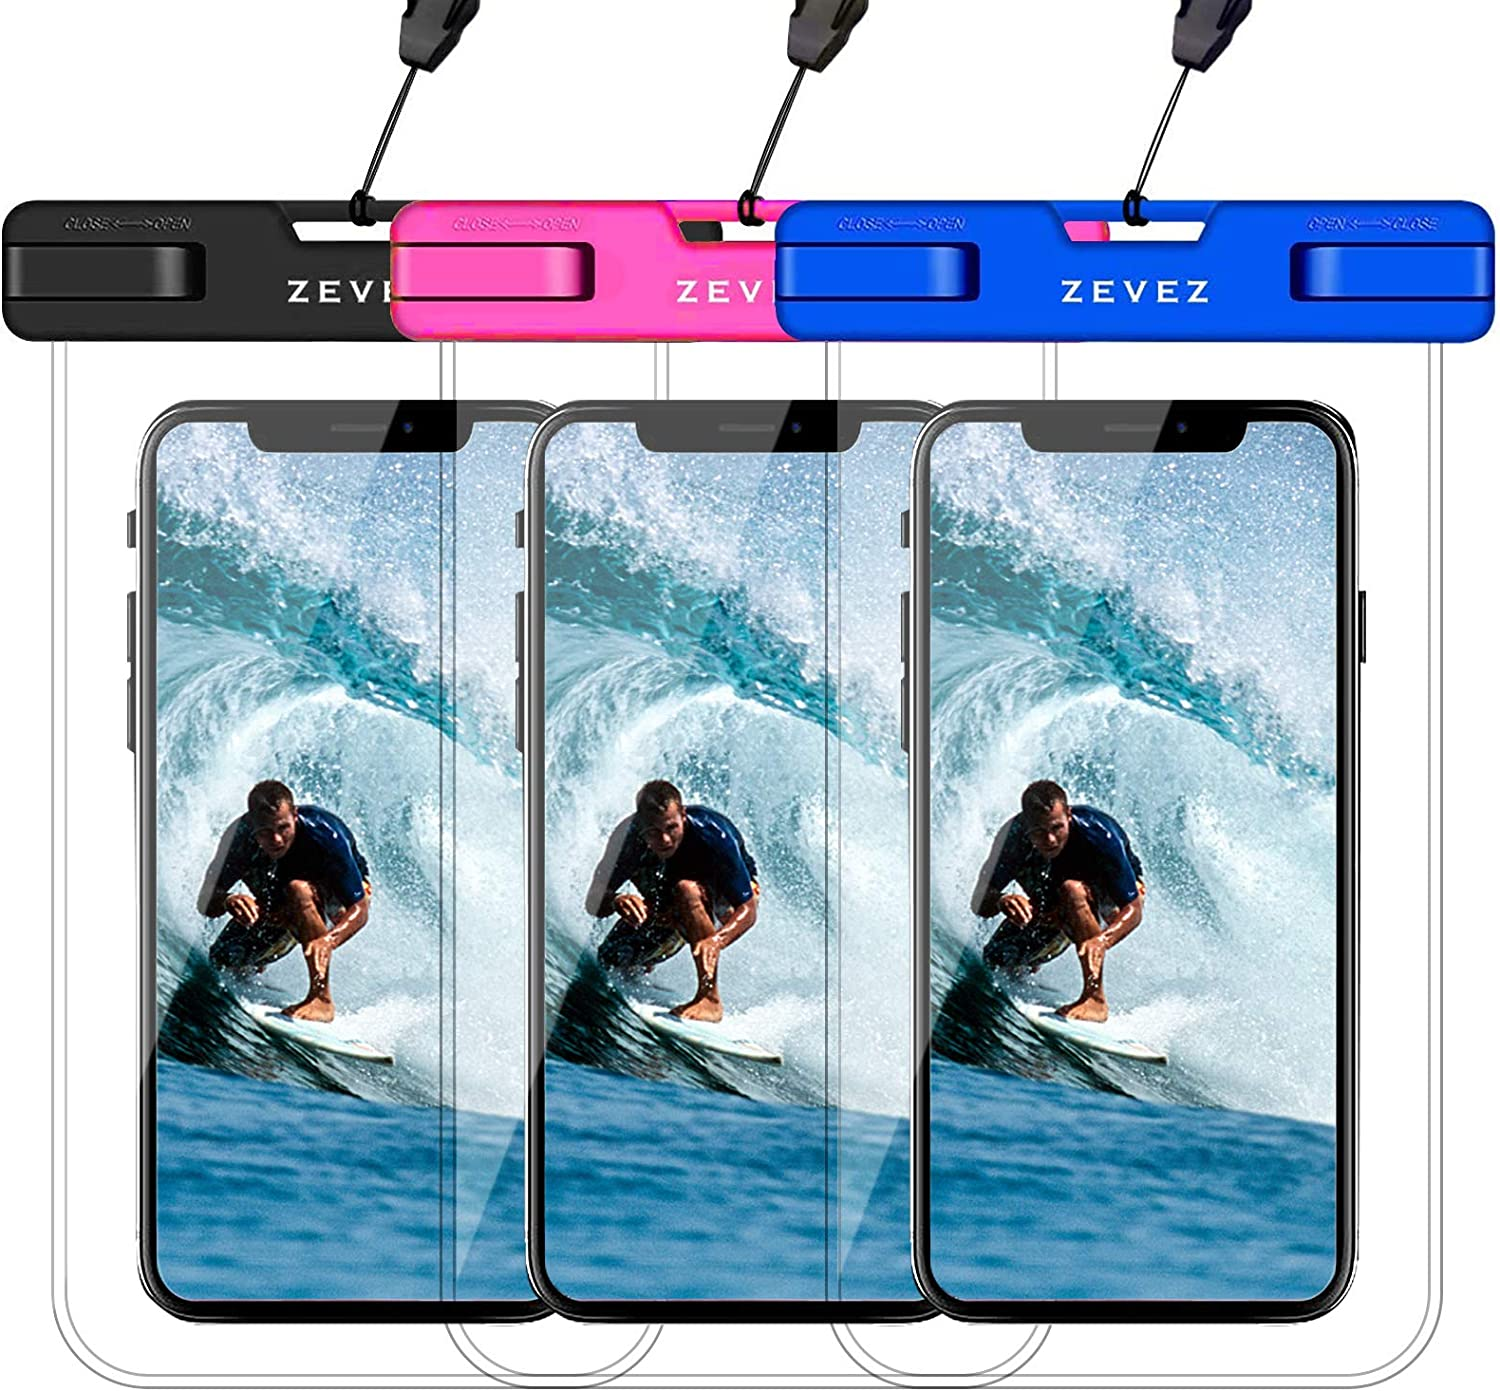 3 Pack Universal Waterproof Case Floating Phone Pouch, Dry Bag for Cell Phone - Summer Water Sports and Dive for iPhone 12 11 Pro Max Xs Max XR X 8 7 Plus, Galaxy S21 Pixel HTC LG Sony Moto Up to 7